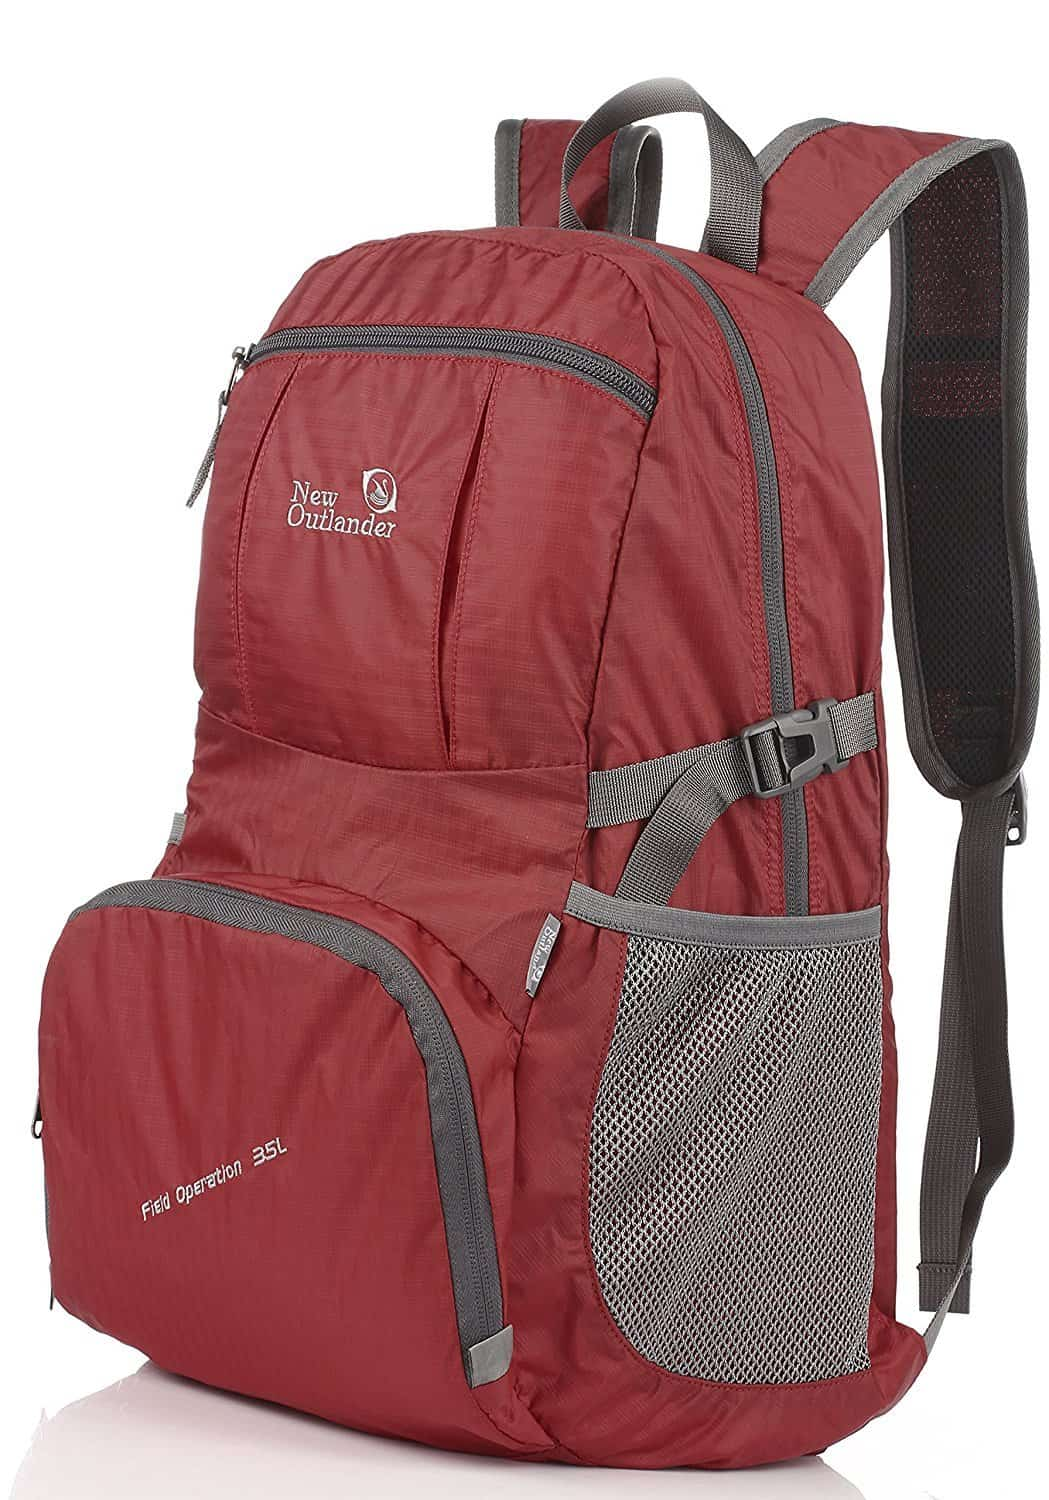 New Outlander Packable LIghtweight Travel Hiking Backpack Daypack Red